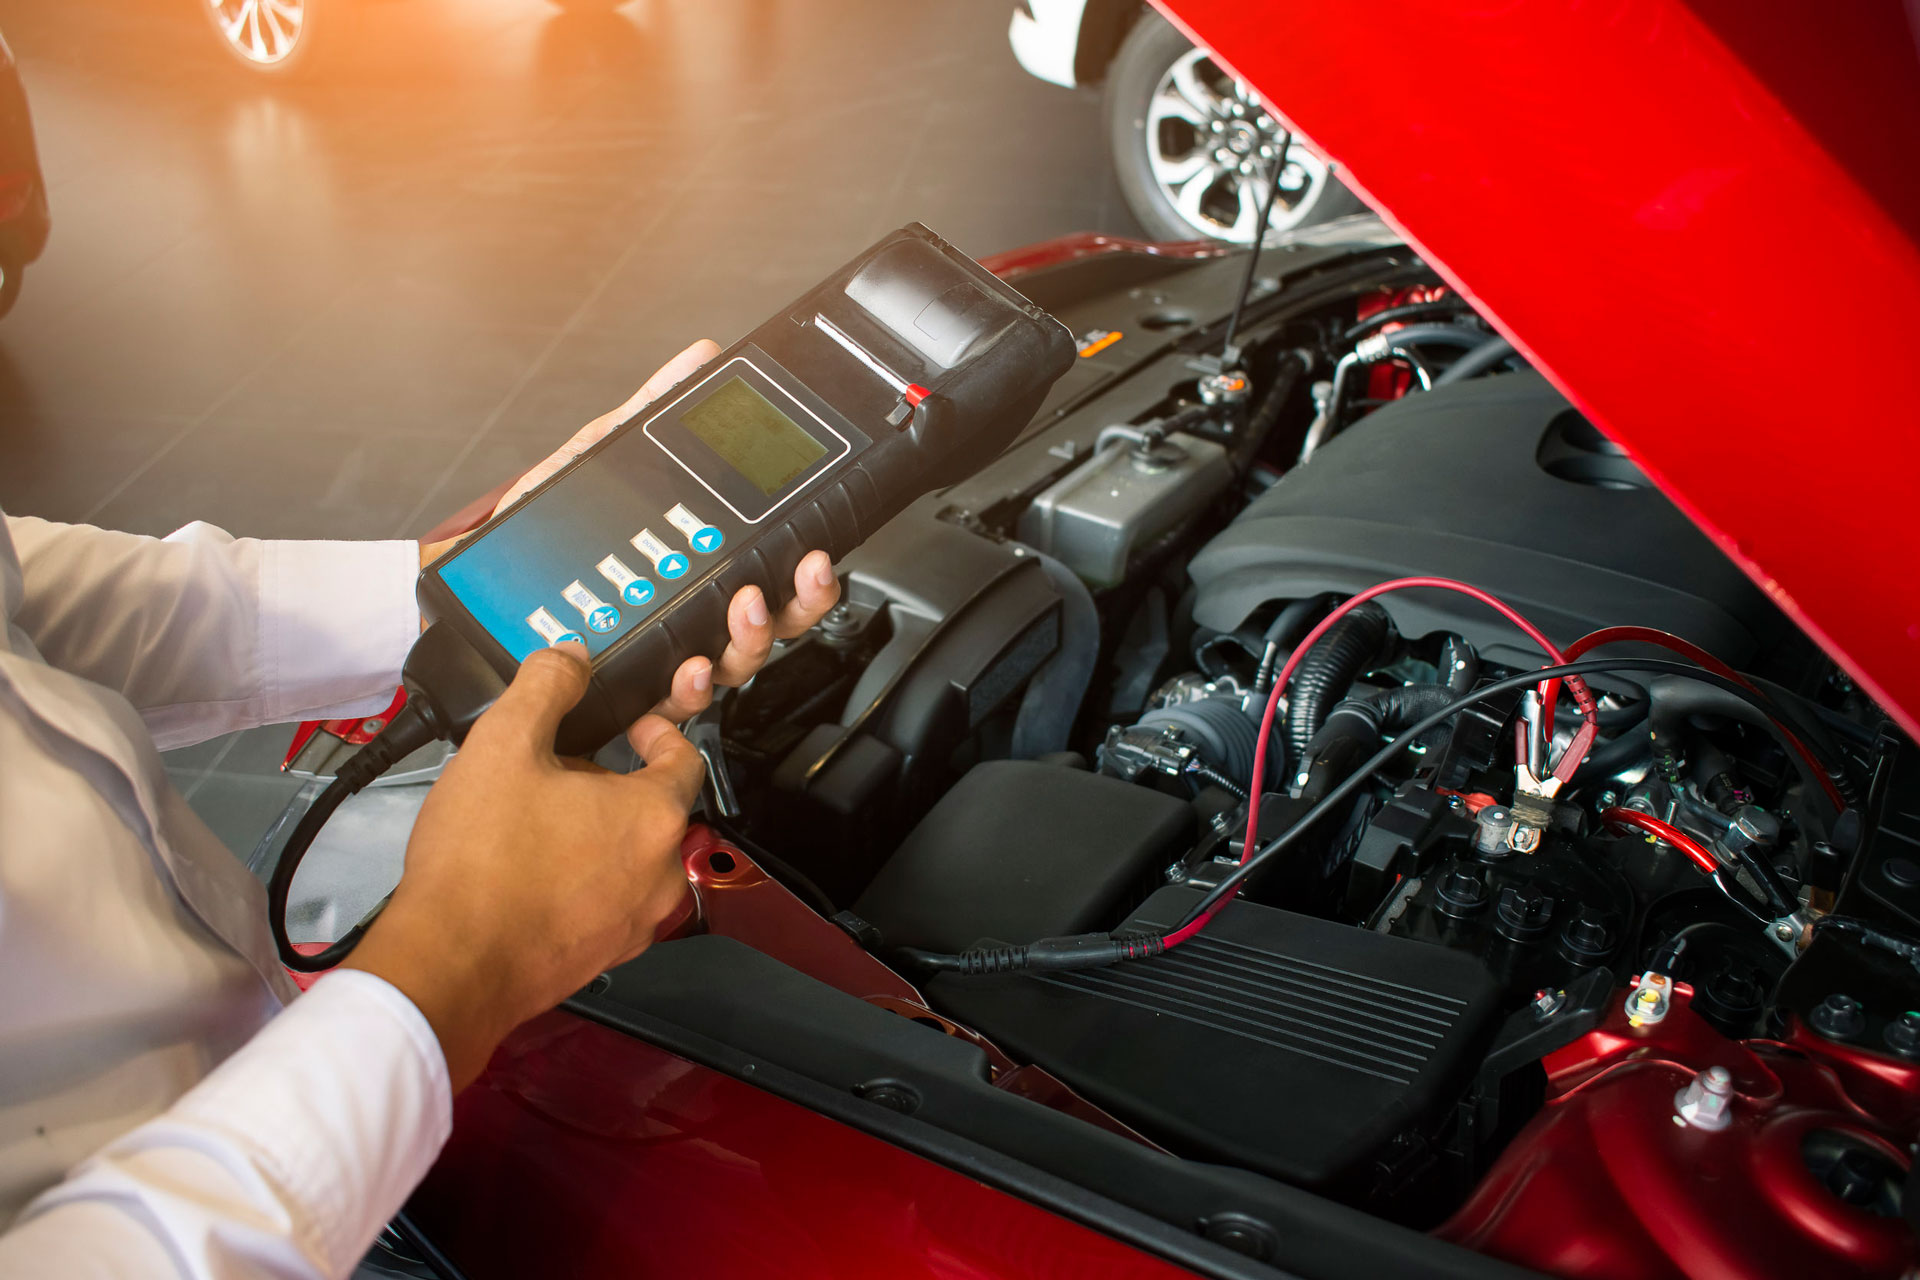 diagnostic vehicle testing